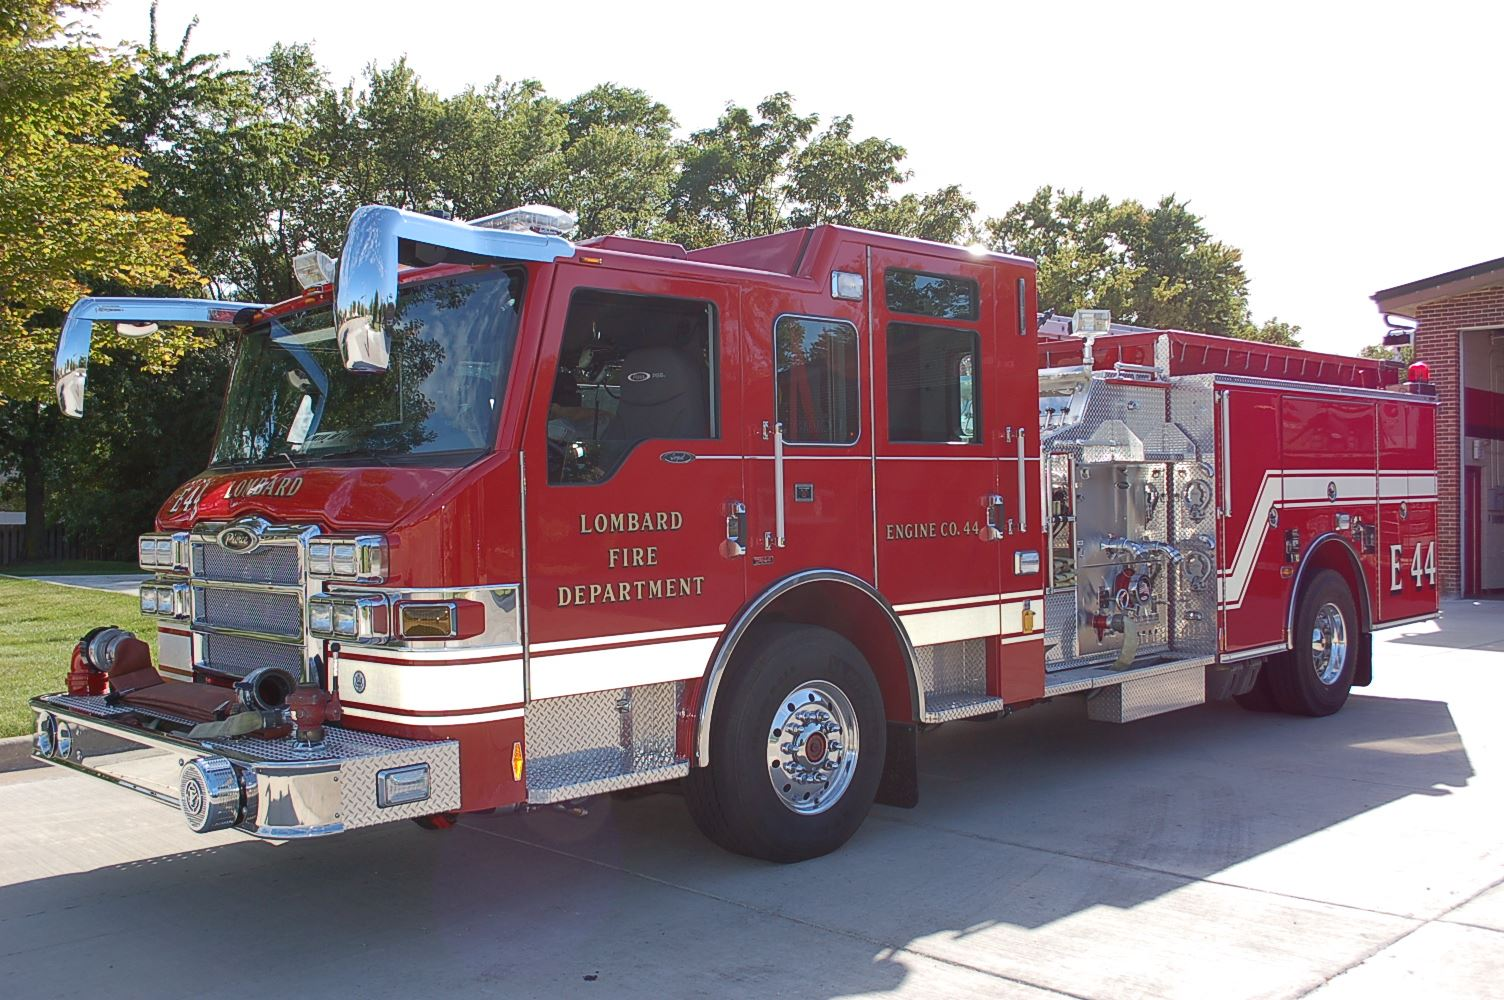 Red Fire Engine 44